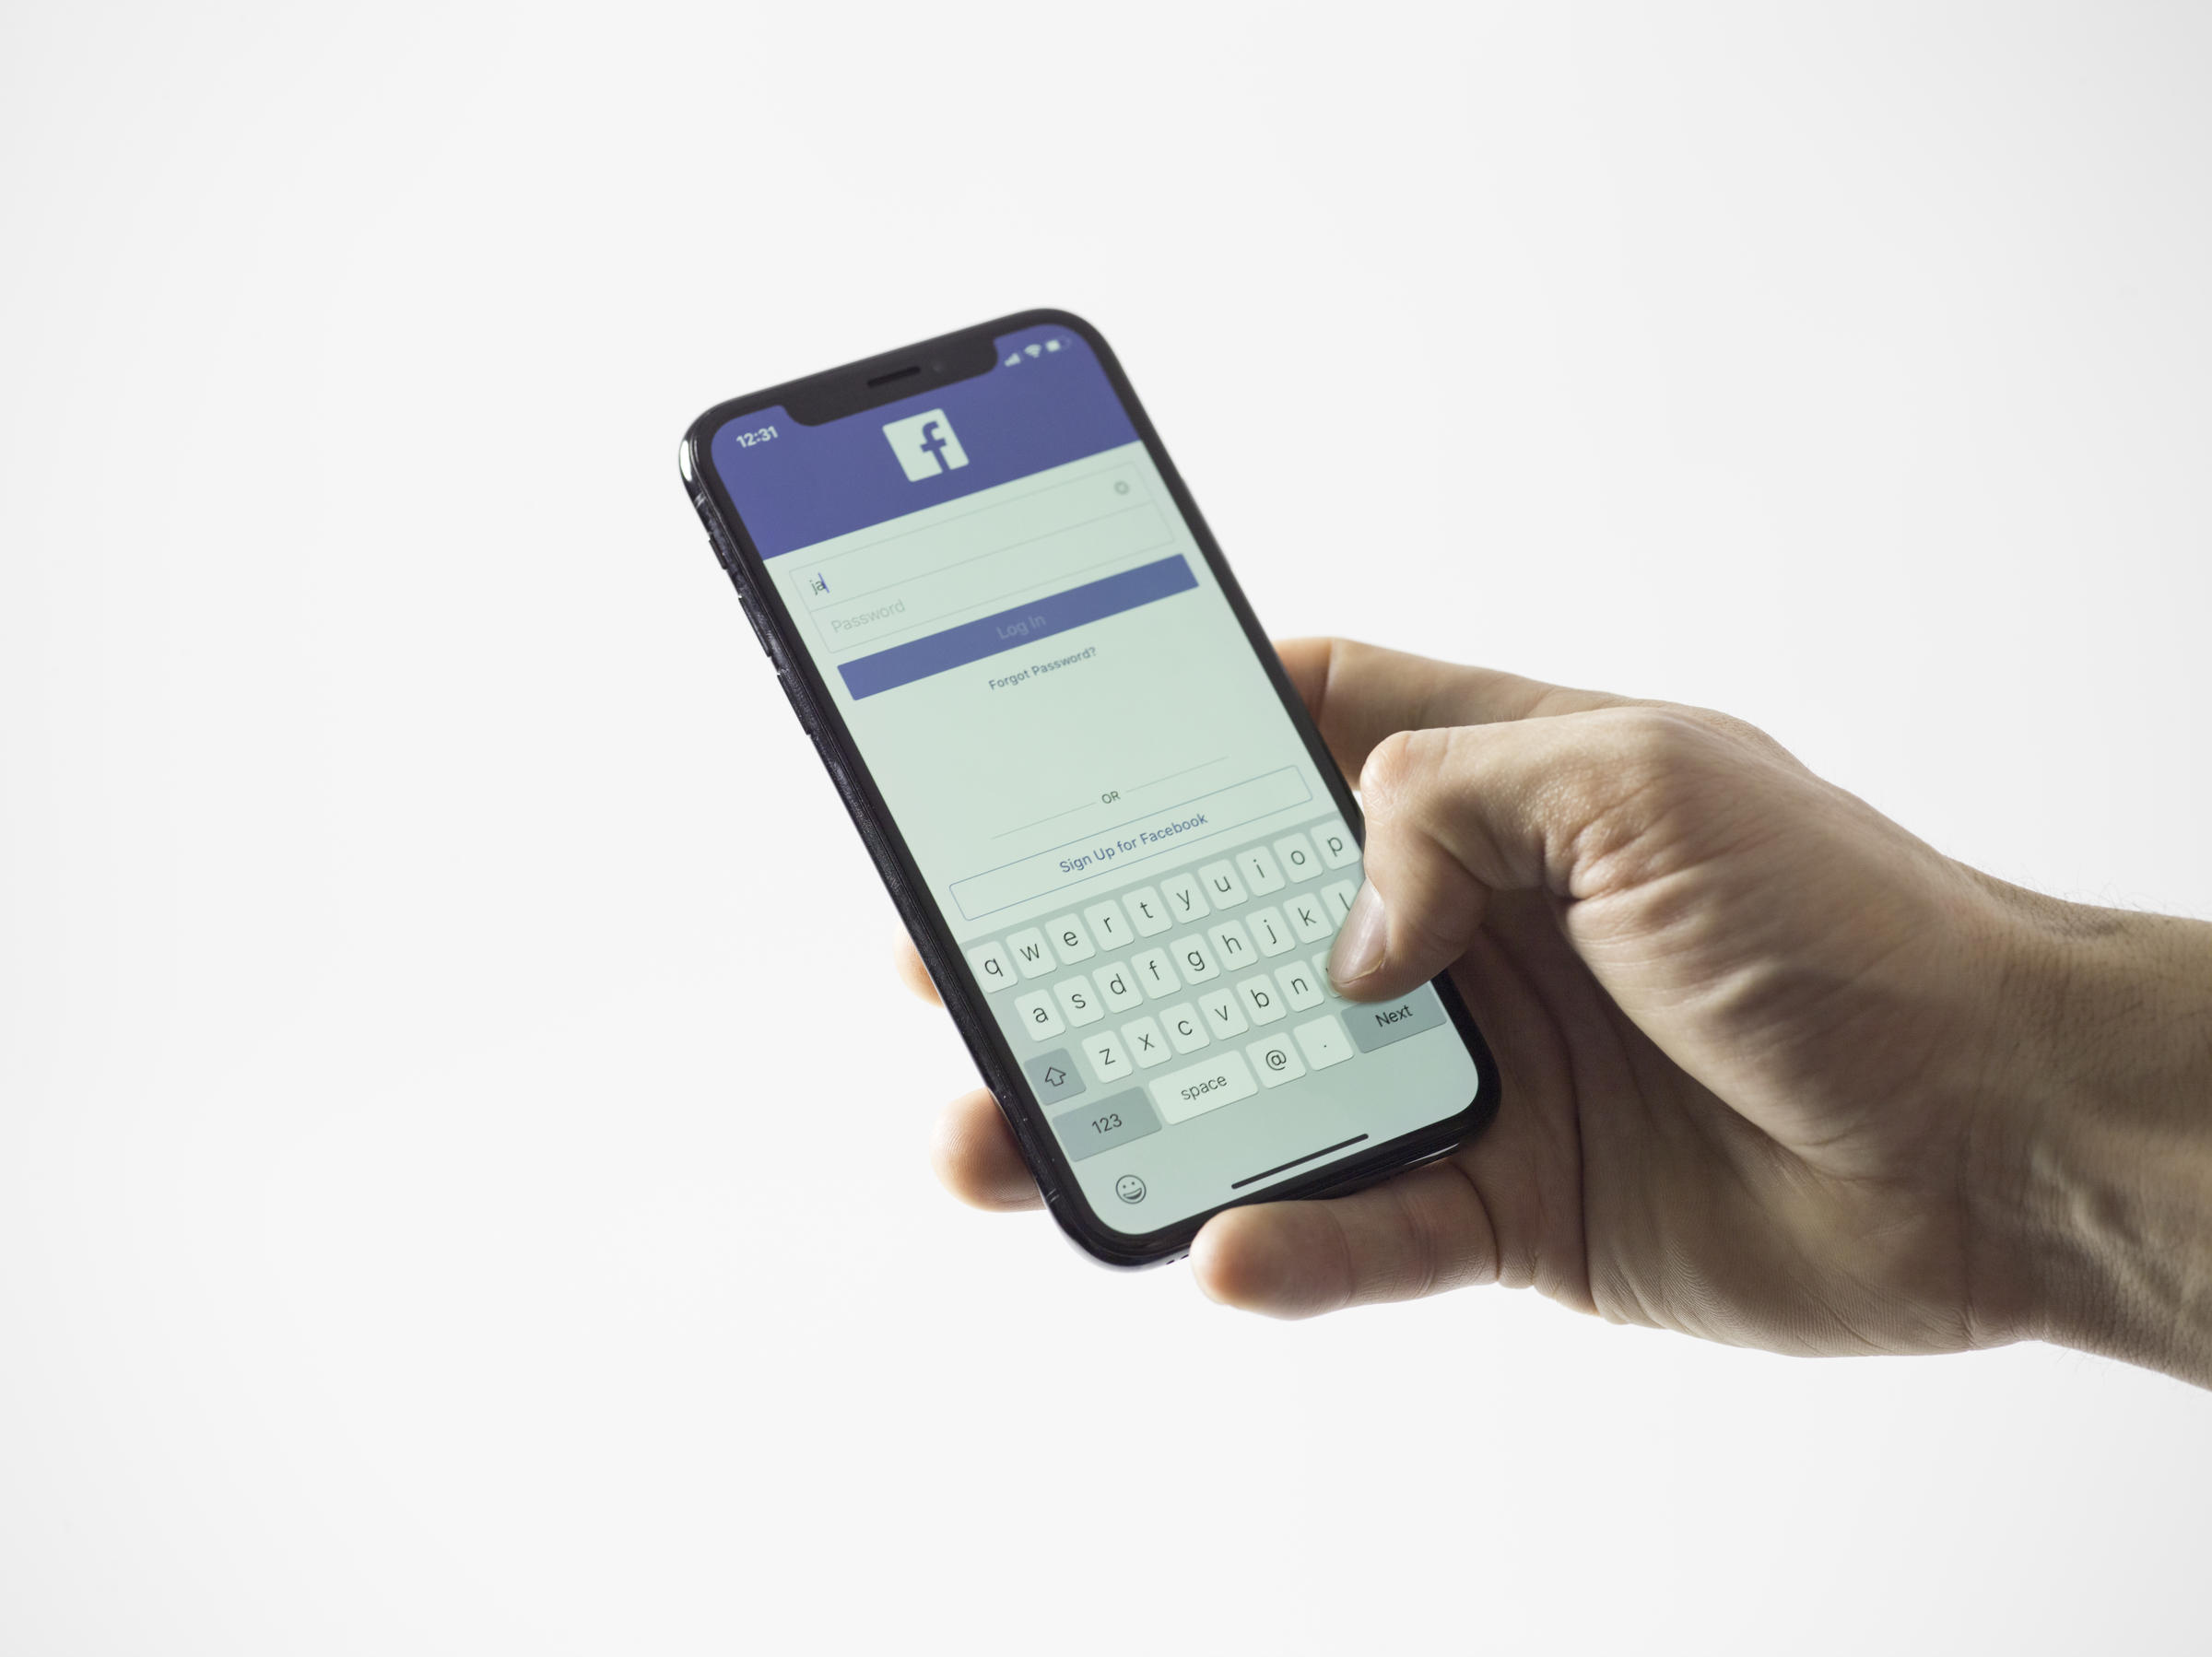 Facebook Already Controls How Its Usersu0027 Data Can Be Gathered And Shared.  Itu0027s University Ethics Boards That Need To Join The Digital Age.